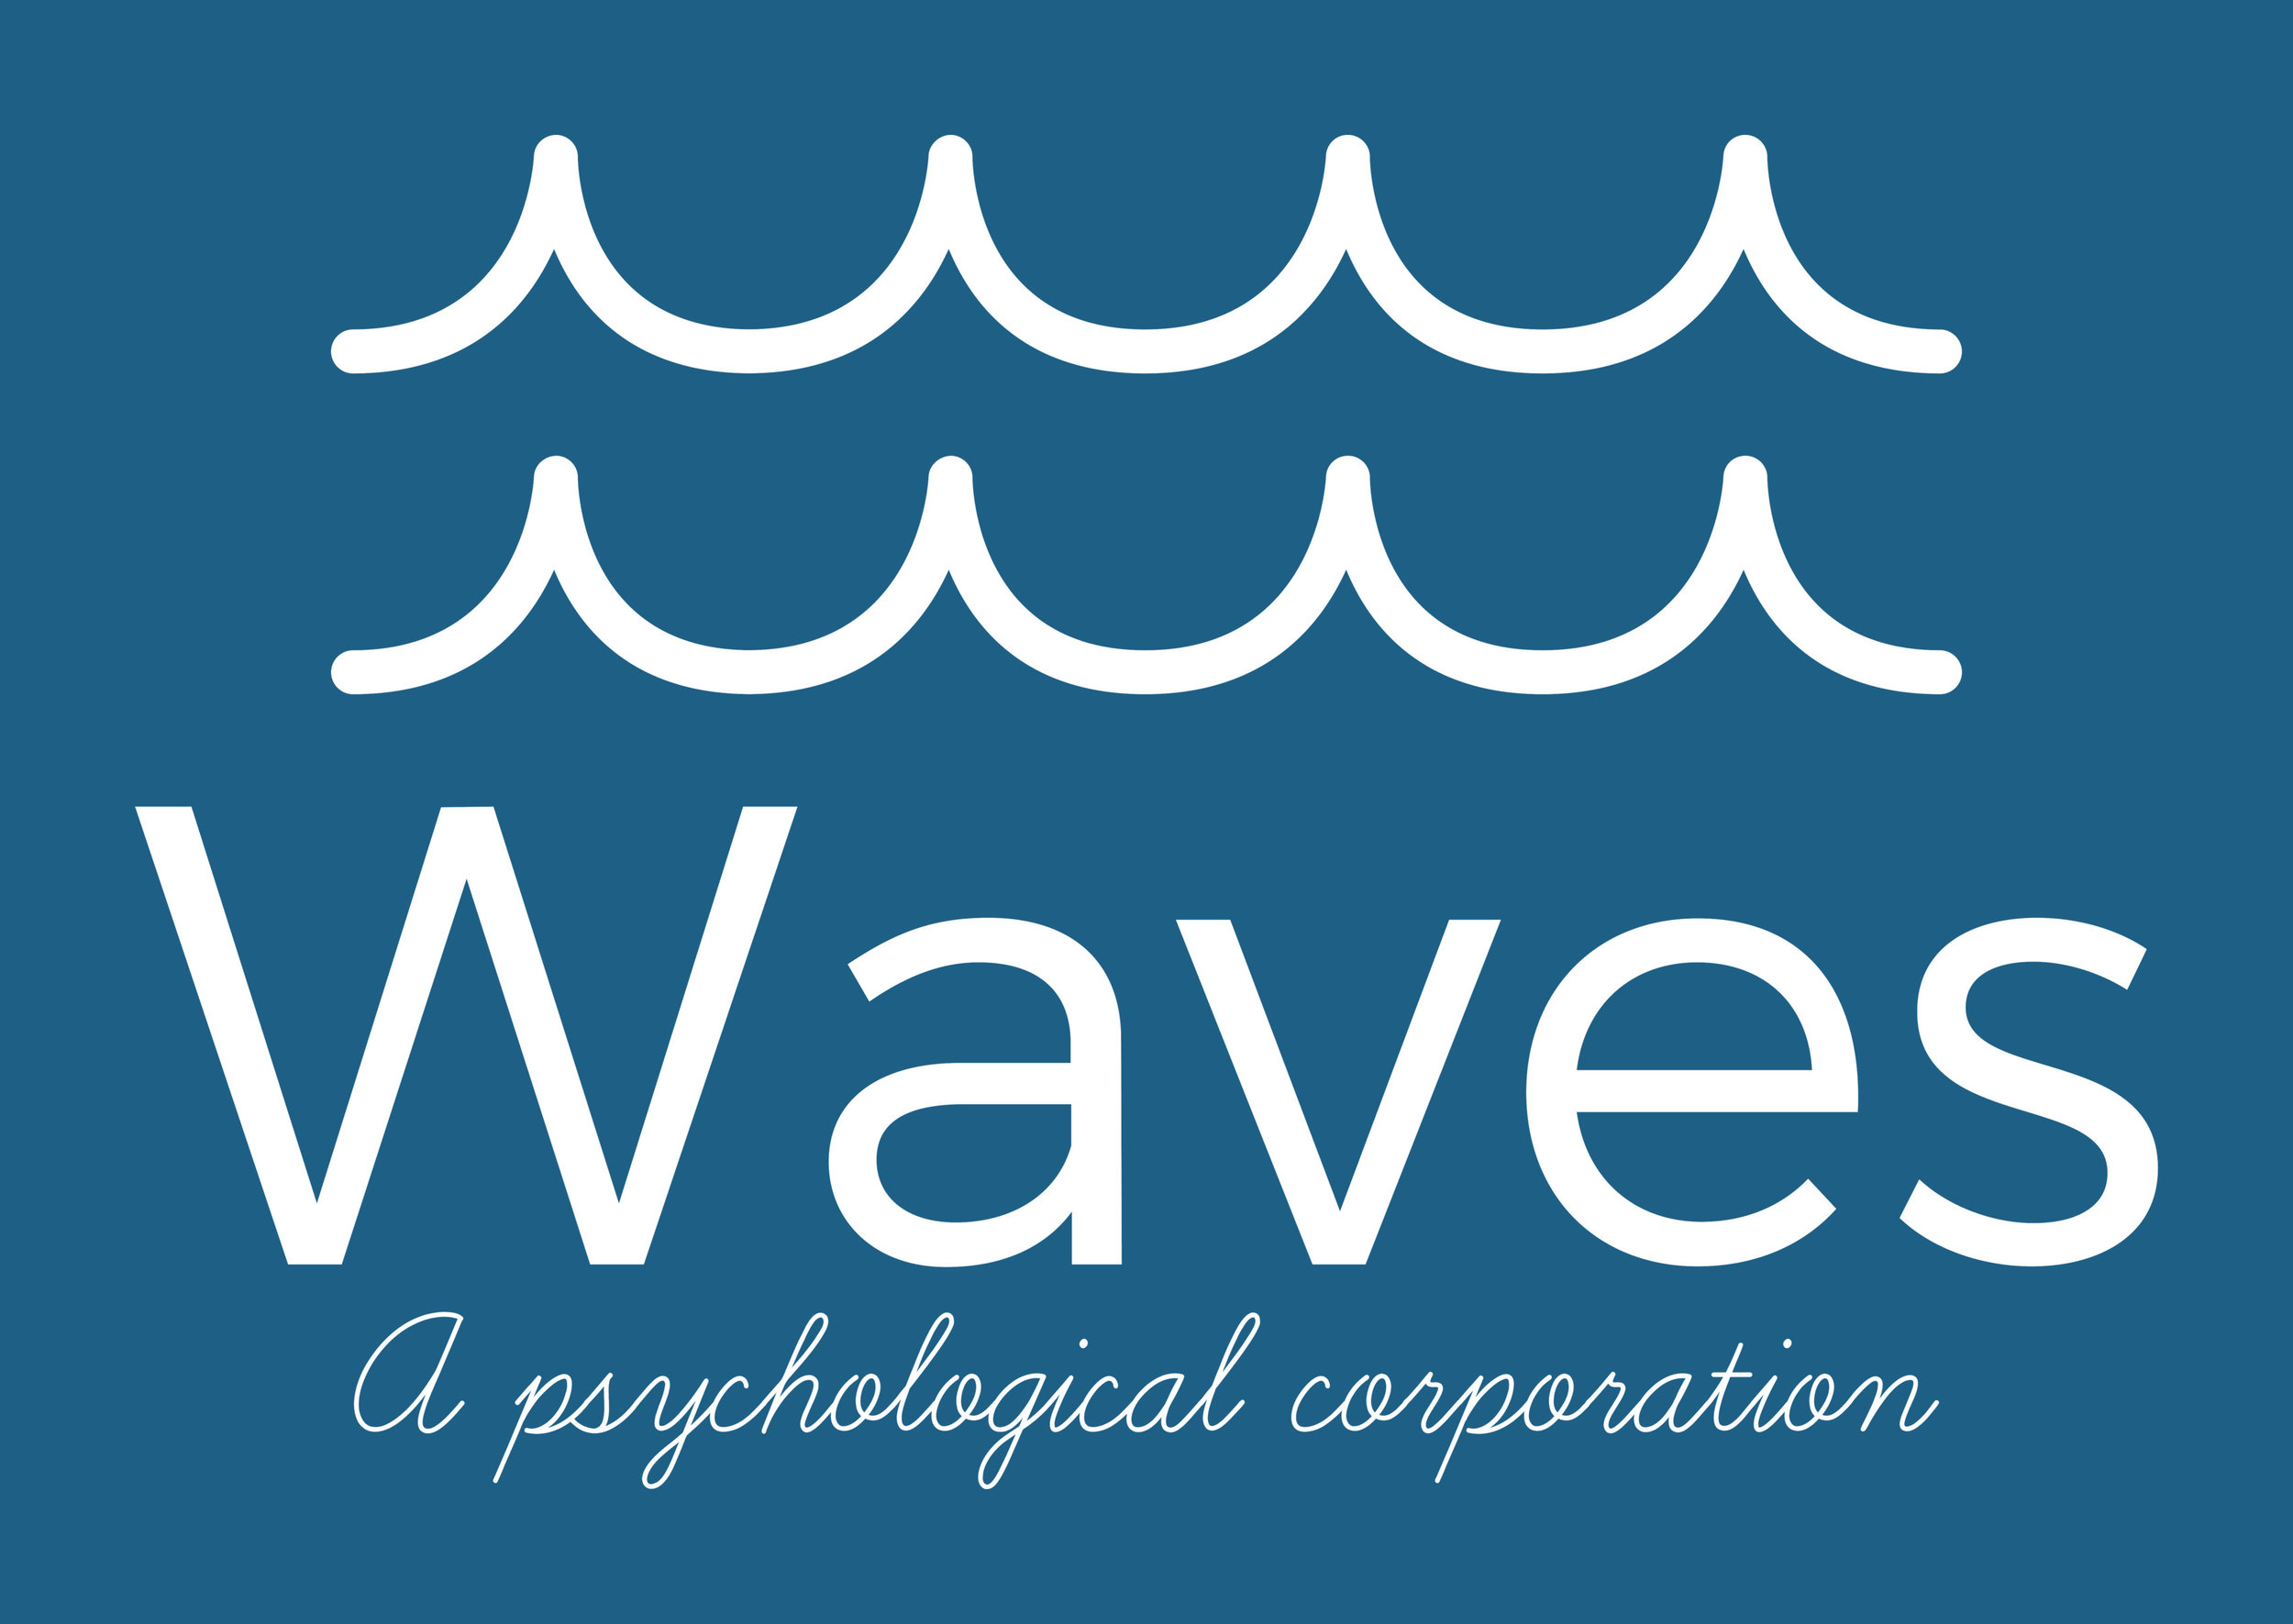 This picture depicts,Waves, a psychological corporation's logo, with its white letters and white drawing of waves on a blue background.